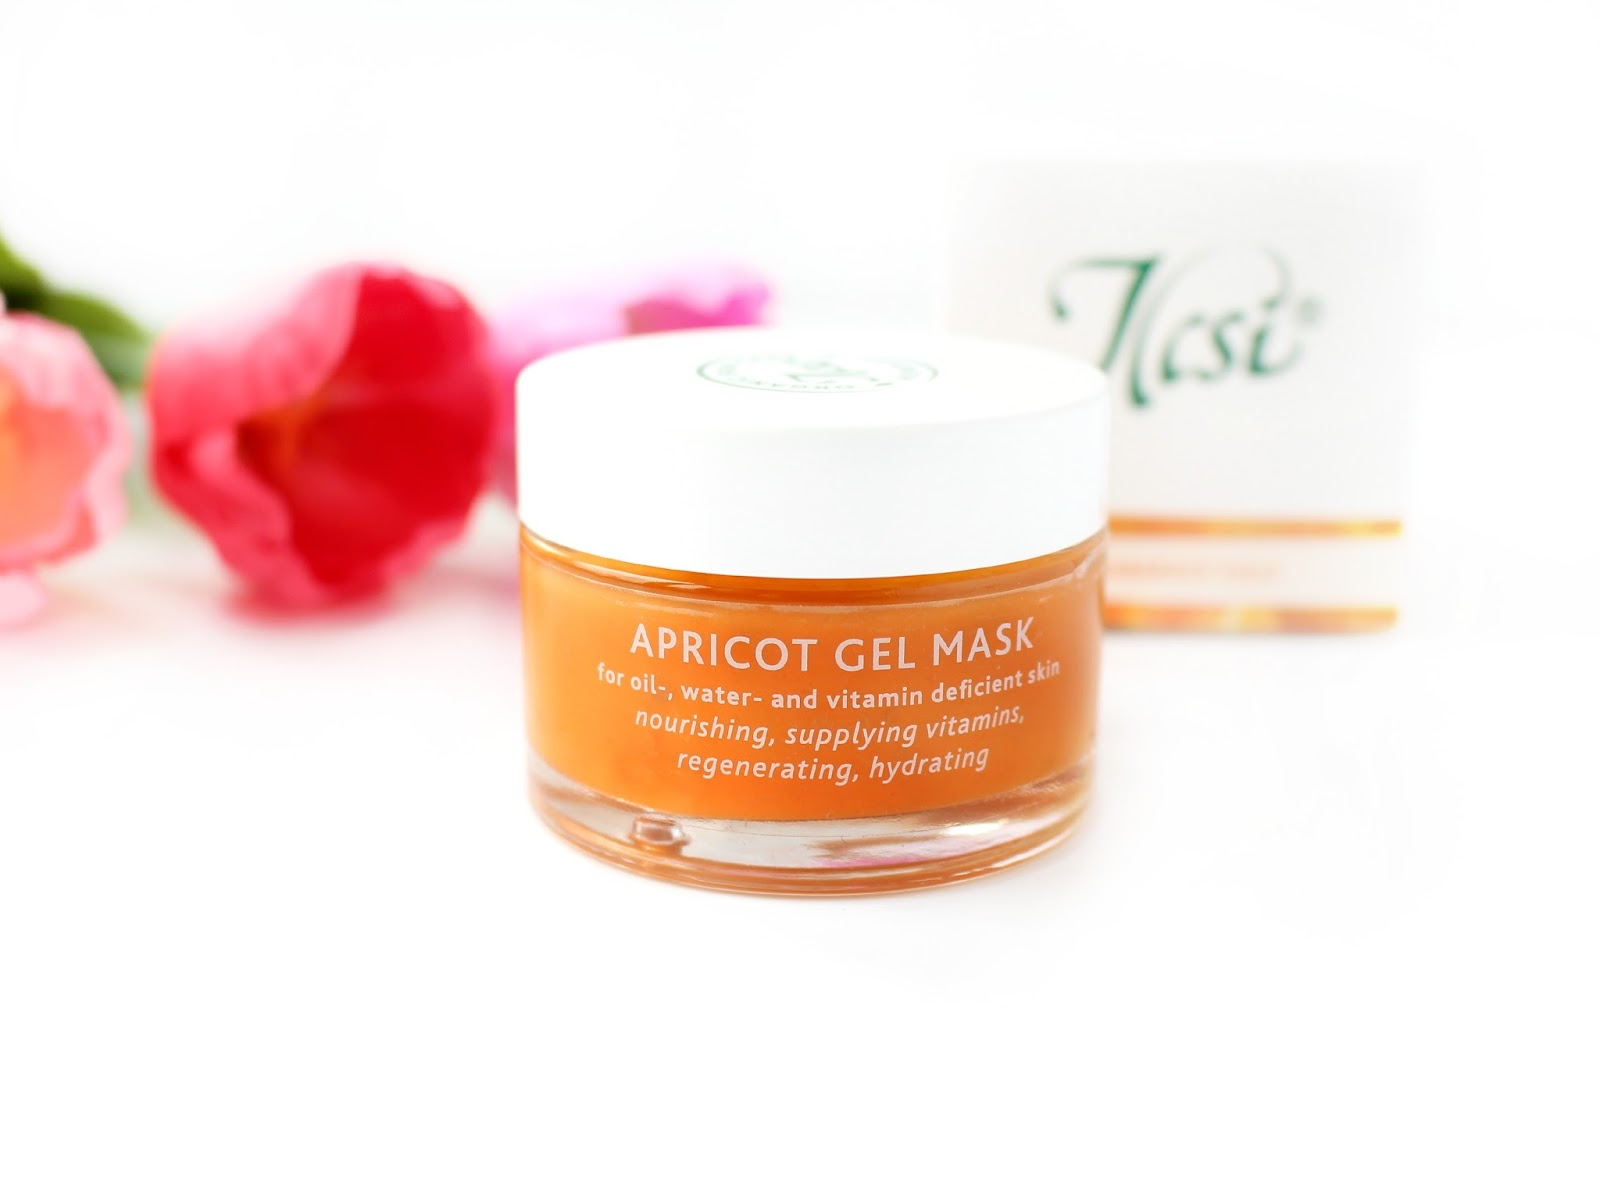 ILCSI Apricot Gel Mask